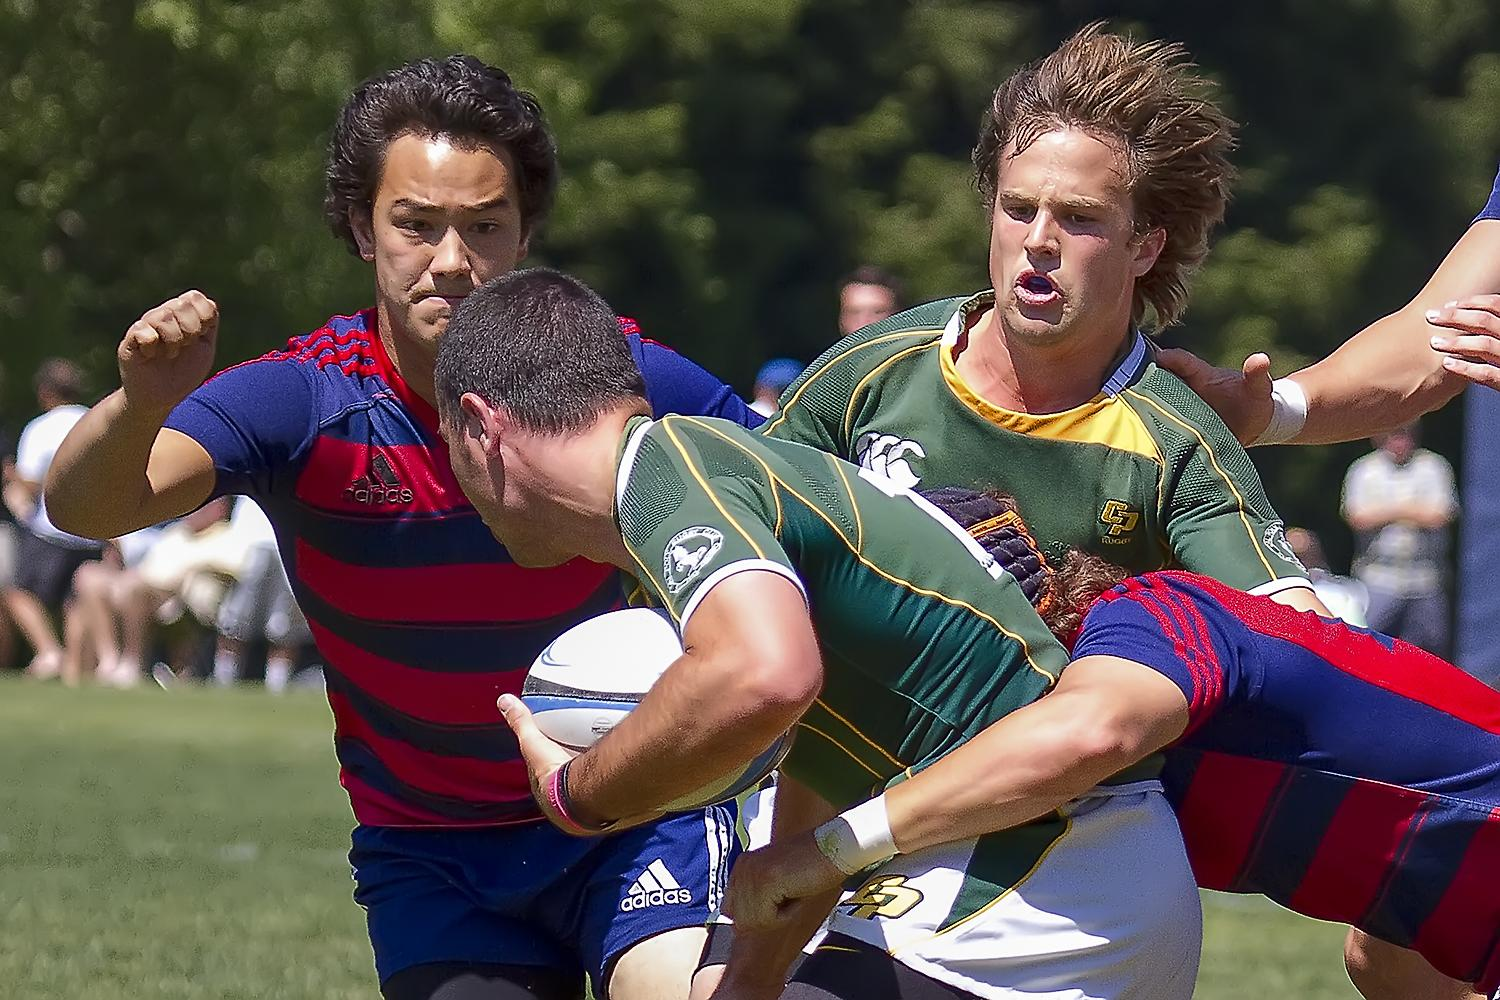 5/4/13 USA Rugby D1-A Semifinal: Cal Poly SLO @ St. Mary's College (CA)